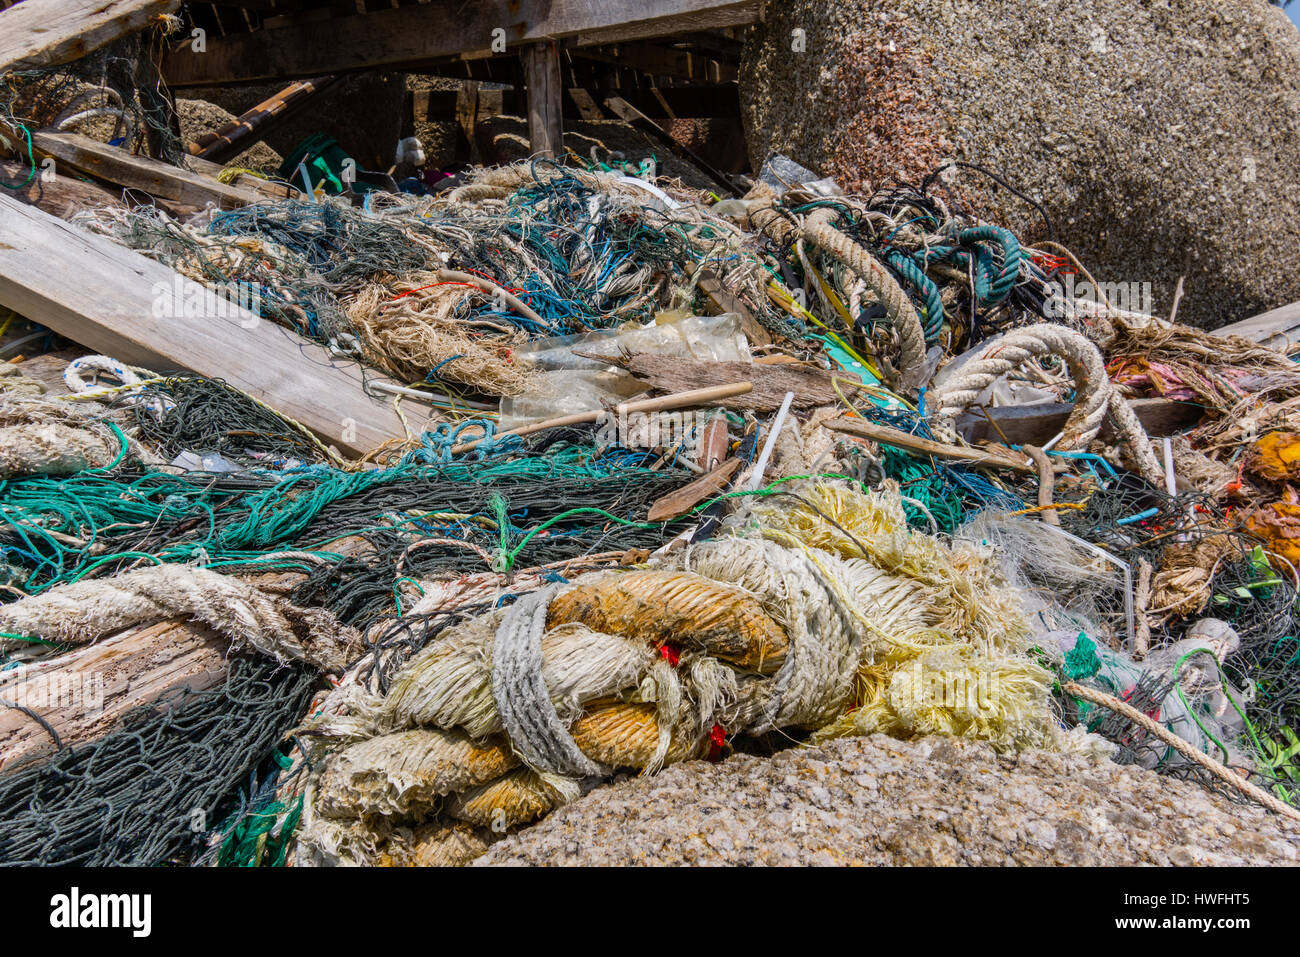 Plastic pollution among the stones on a tropical shore, Rubbish, ropes and cords. Haad Rin, Koh Pangan, Thailand - Stock Image